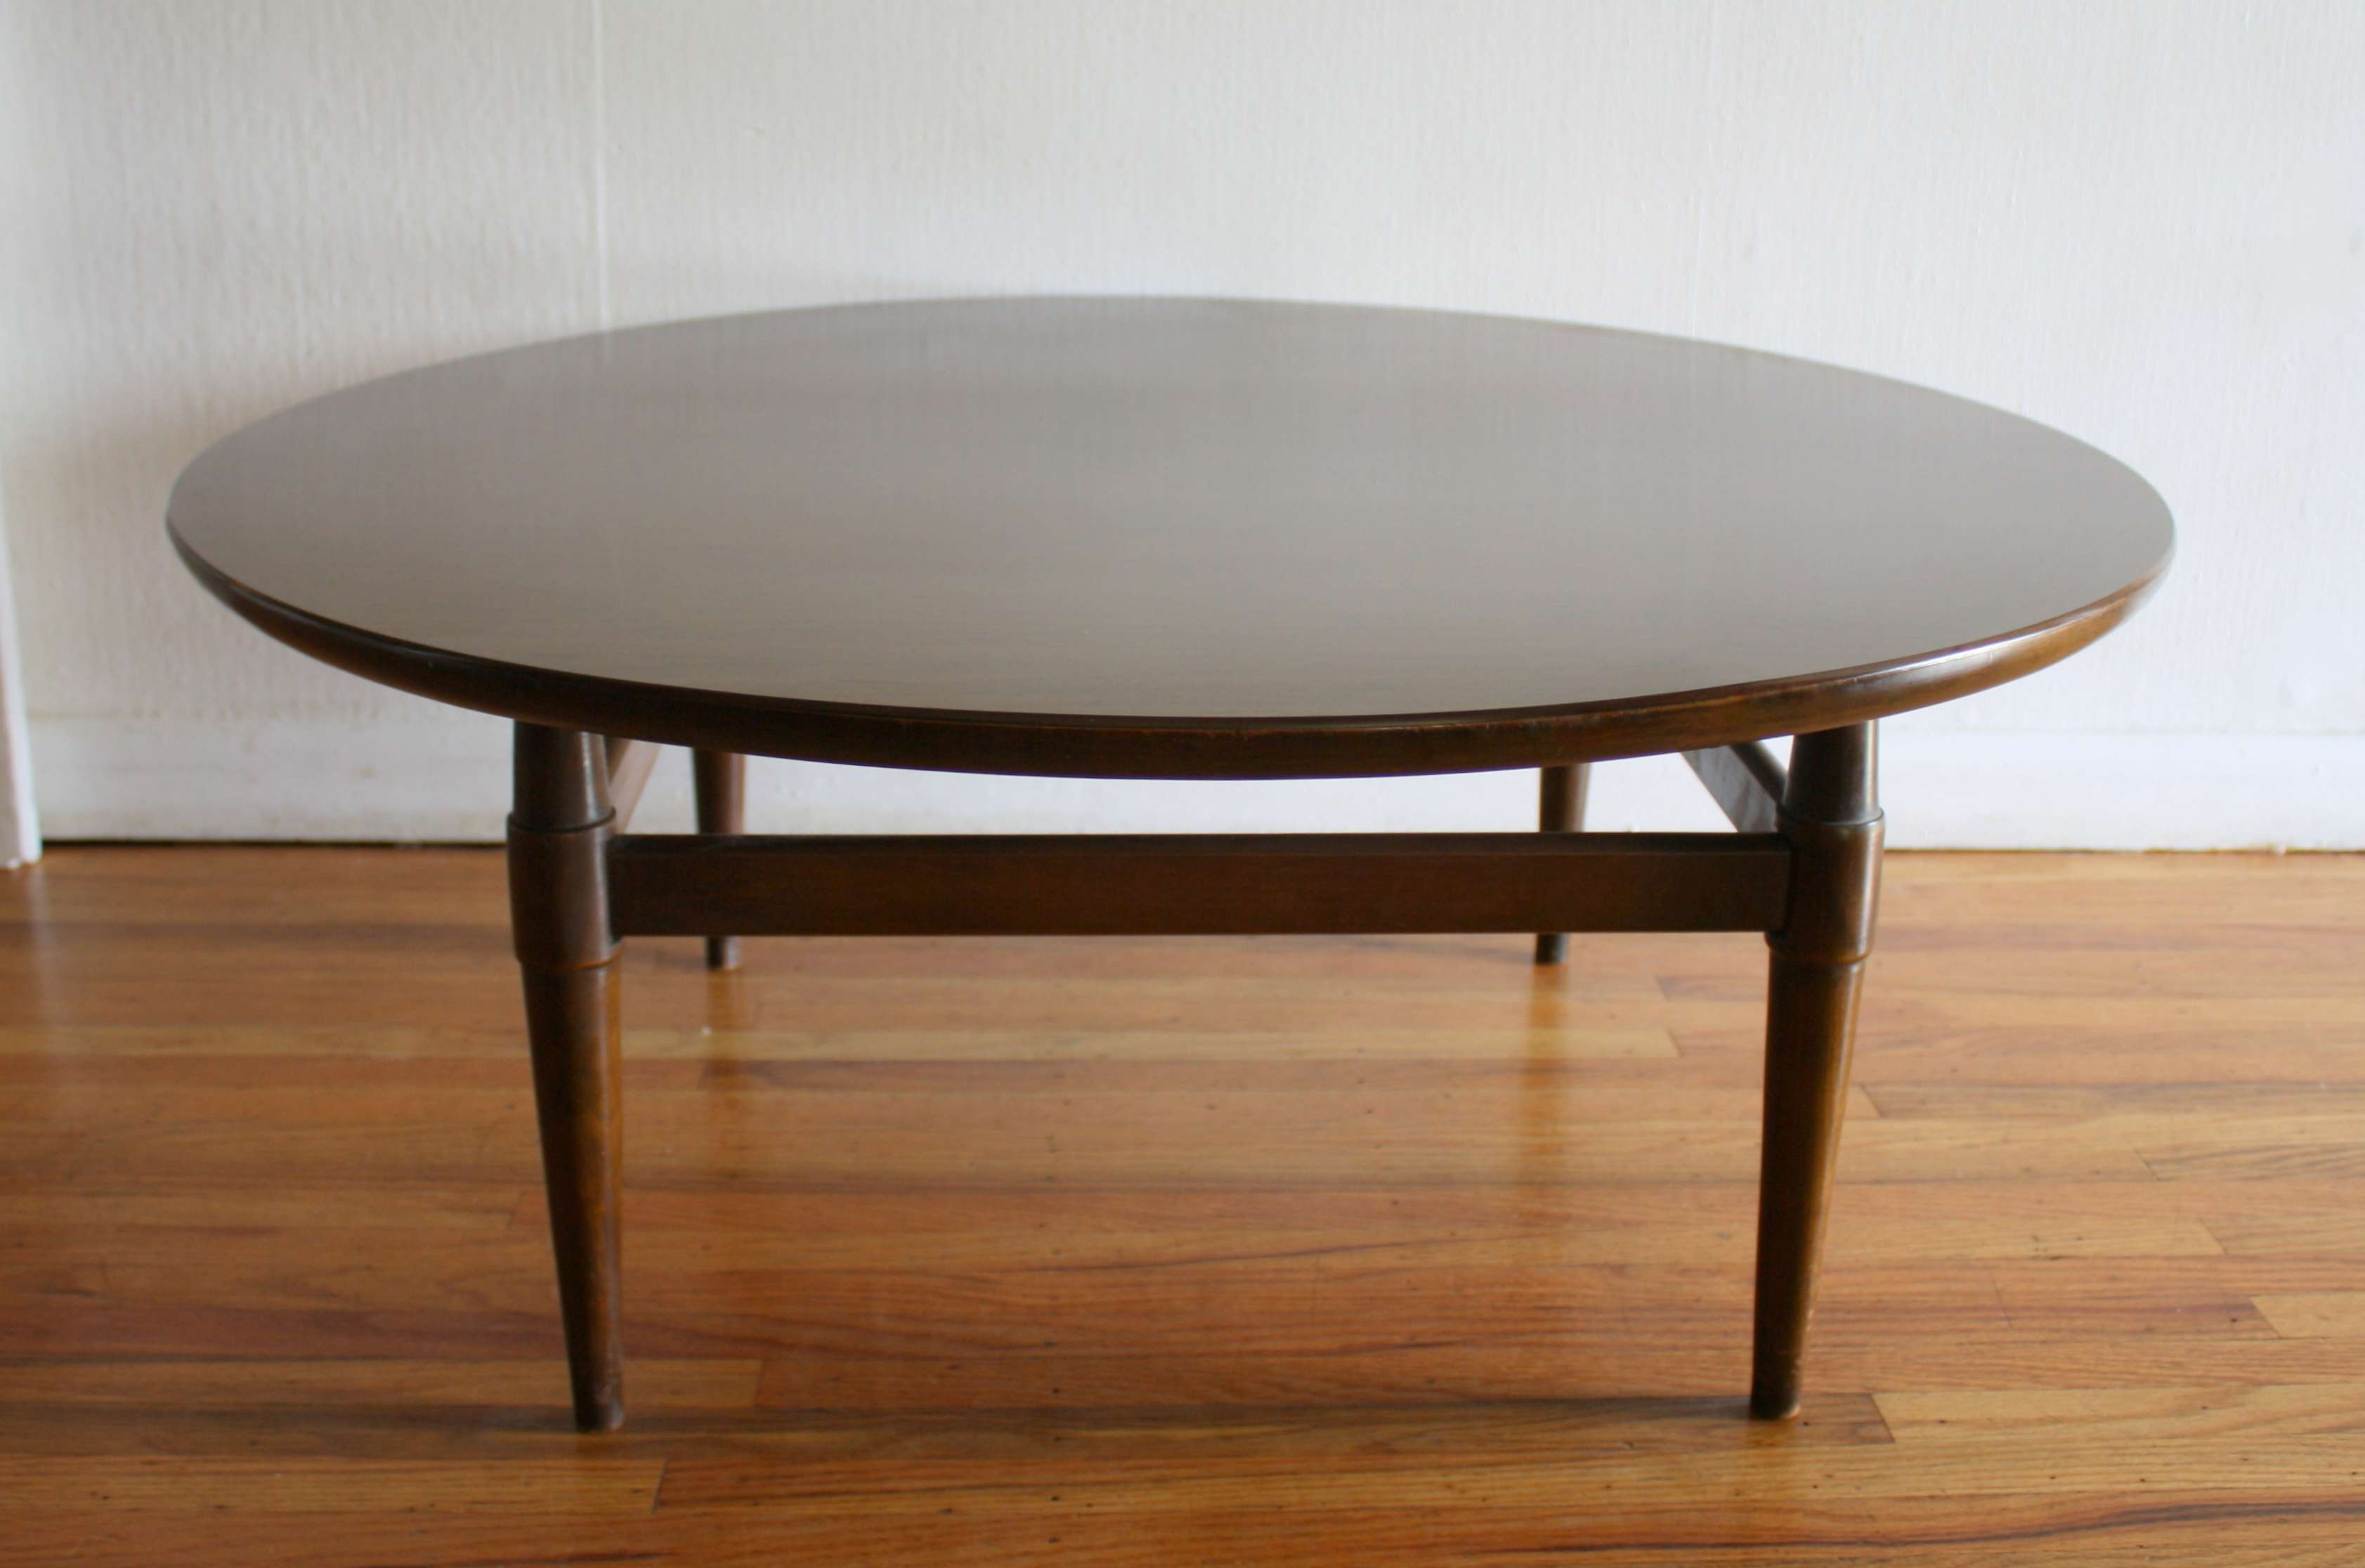 Most Popular Elephant Coffee Tables With Glass Top Regarding Coffee Tables : Round Wonderful Elephant Glass Coffee Tables Mcm (View 15 of 20)